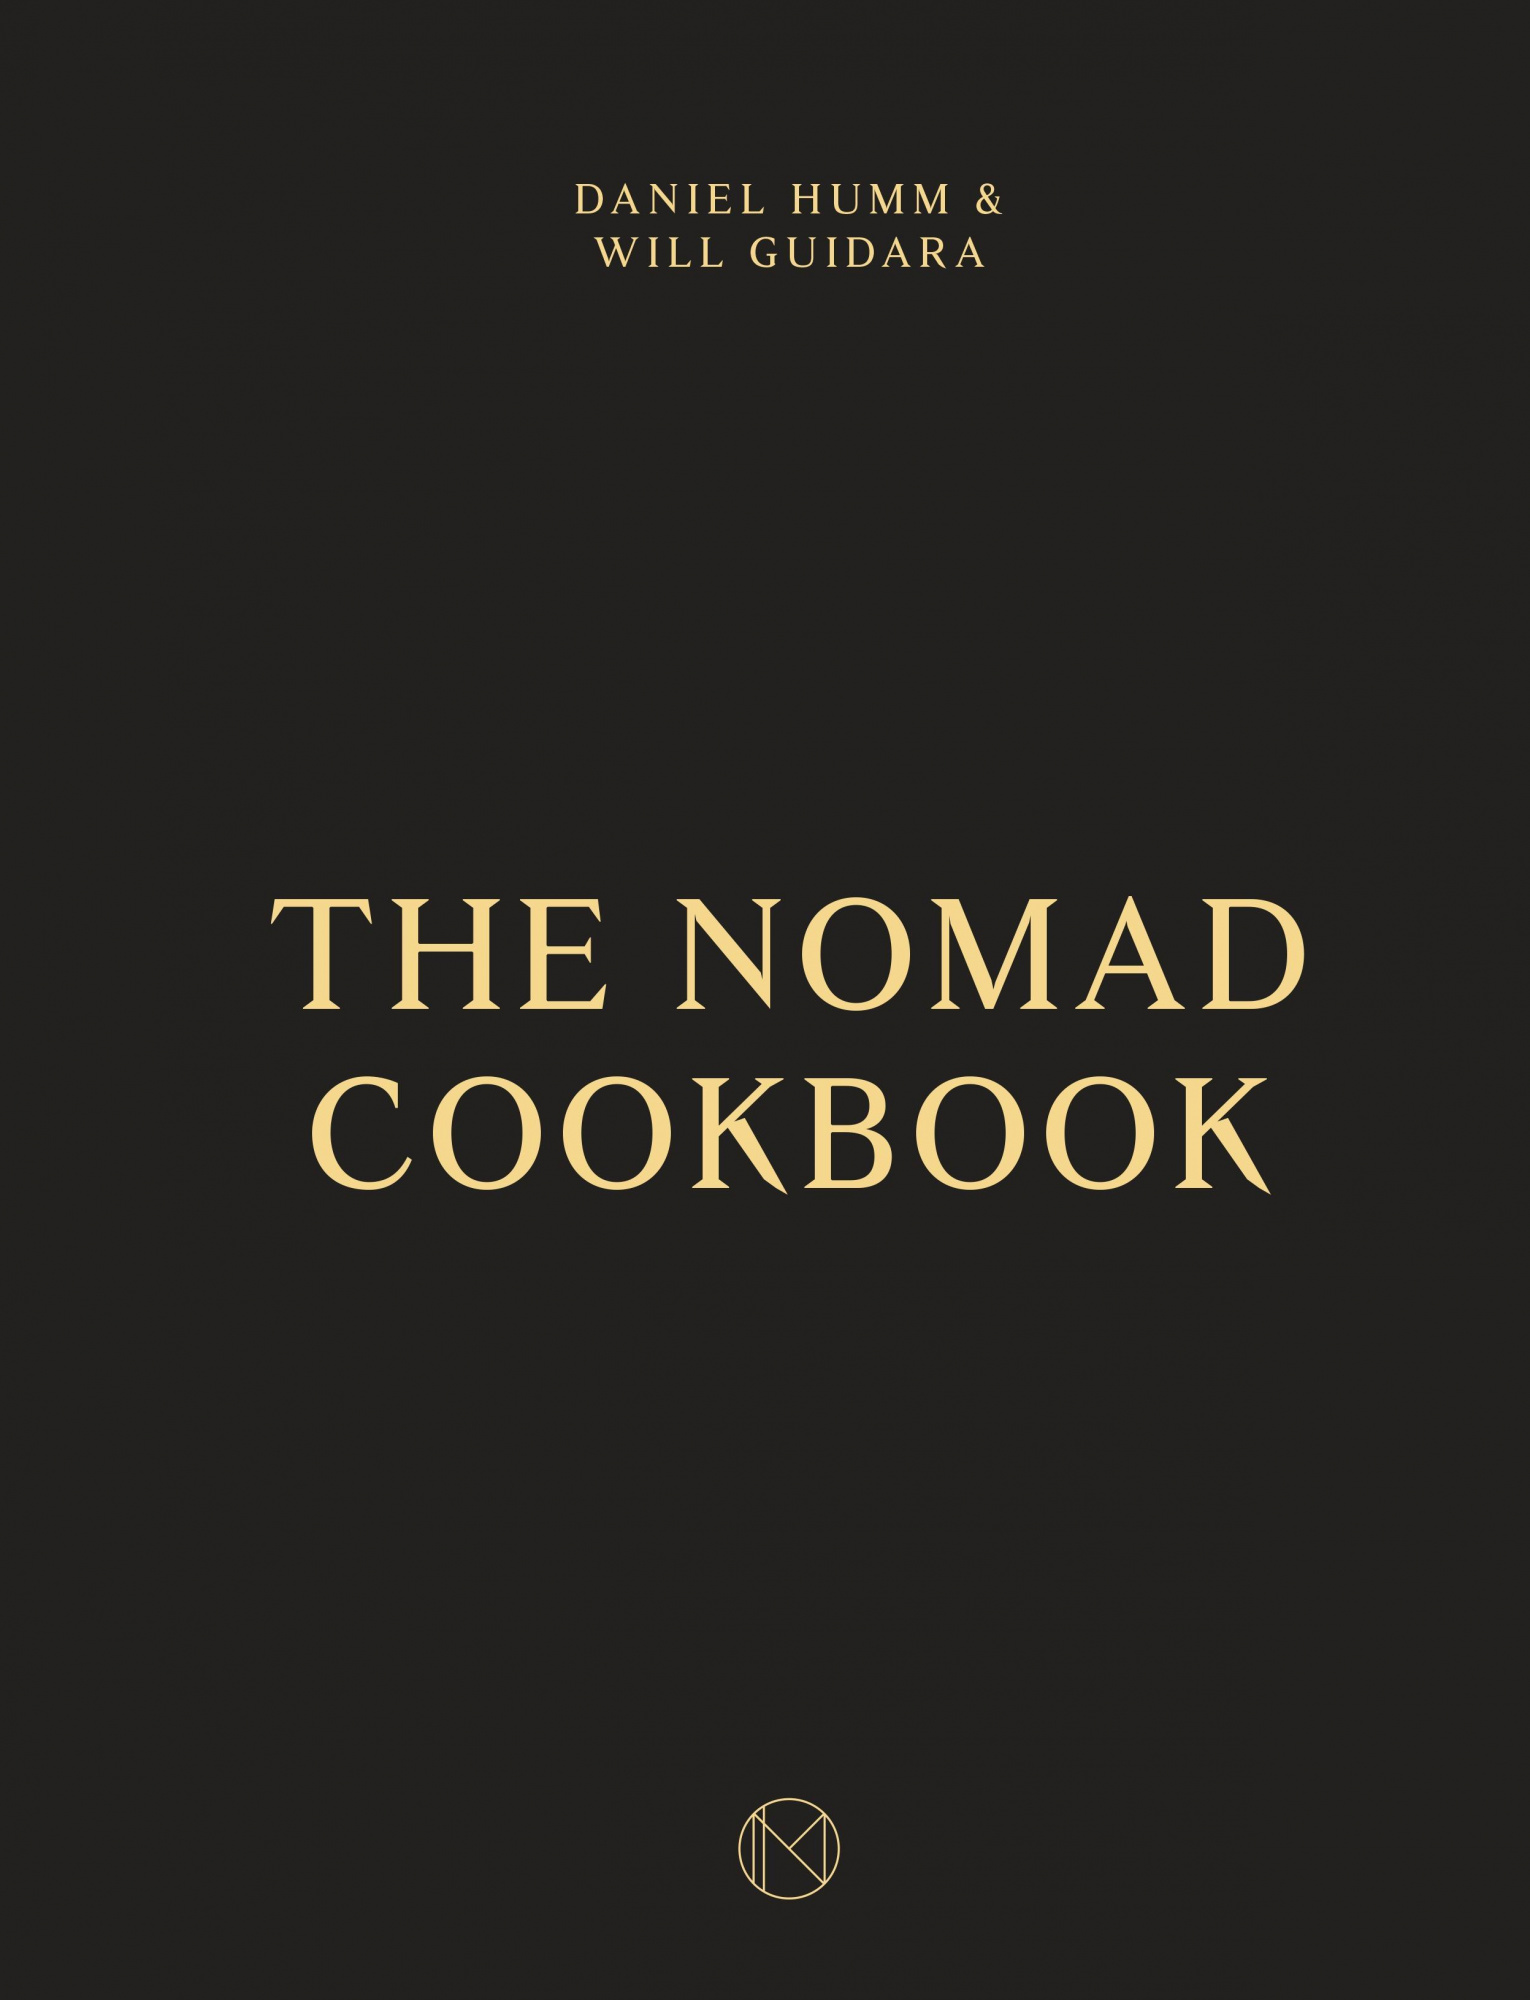 Cover Art for The Nomad Cookbook: Food and Drink, ISBN: 9781607748229